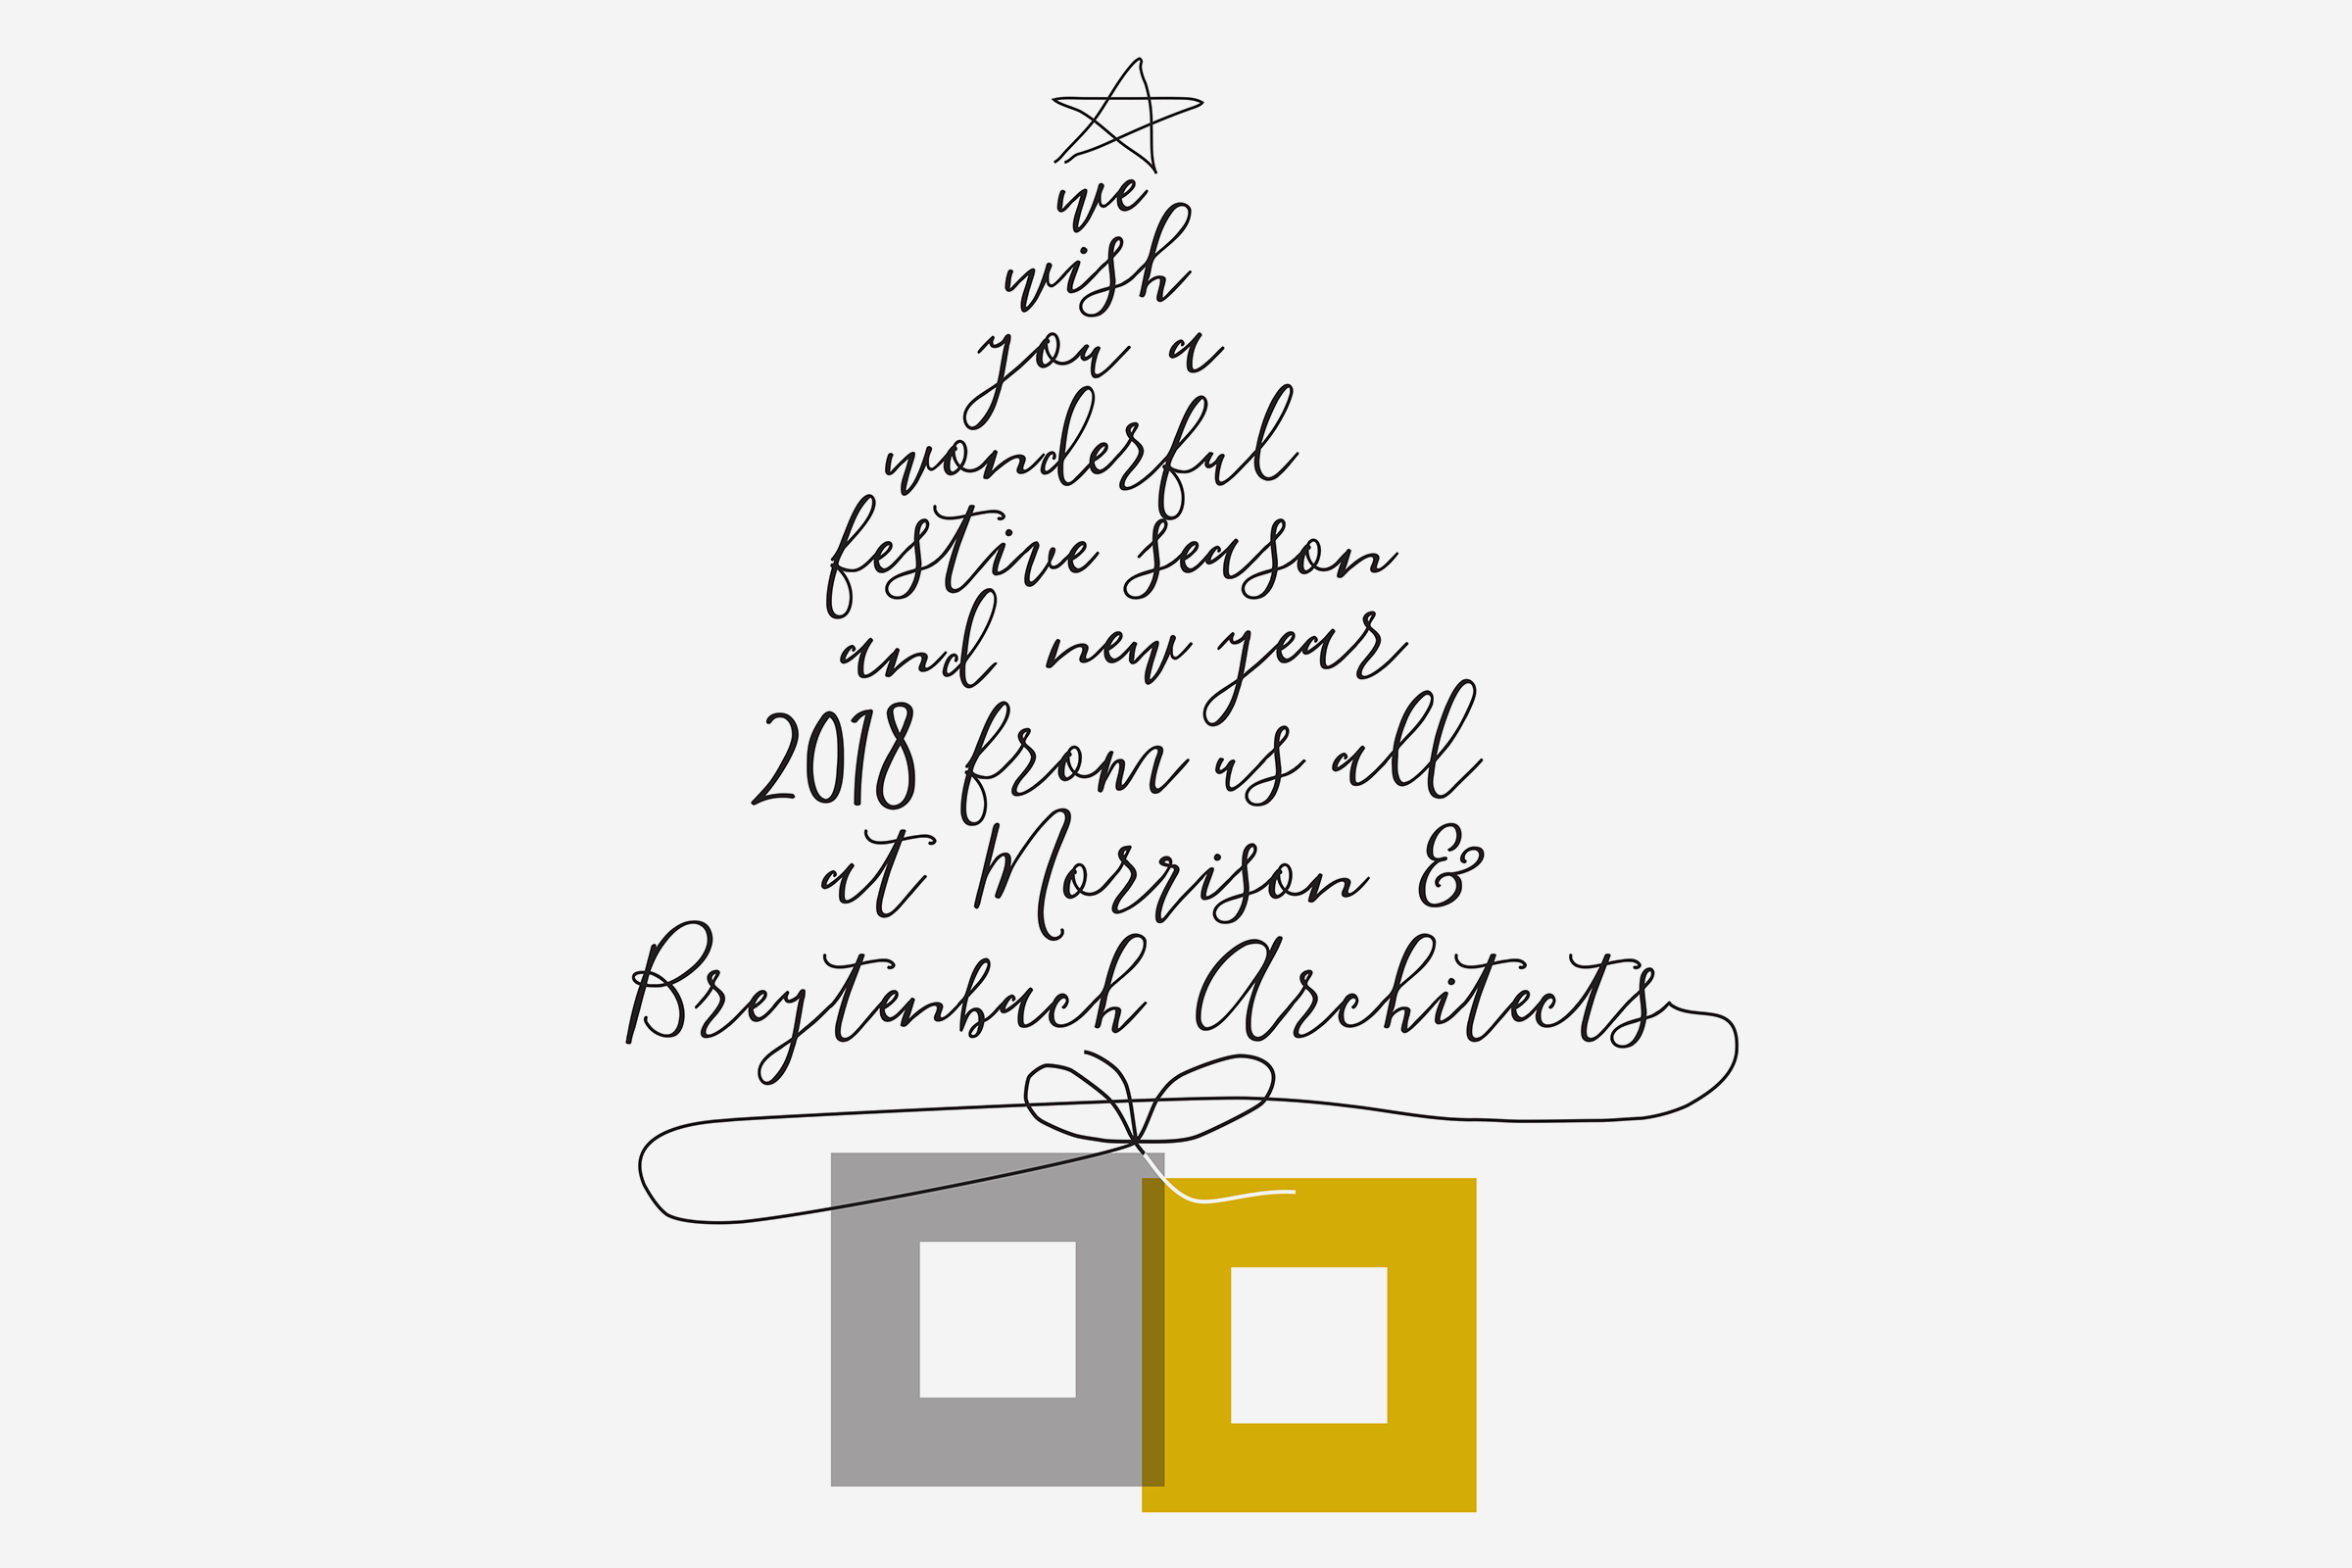 We wish you a wonderful festive season and new year 2018 from us all at Morrison & Breytenbach Architects!